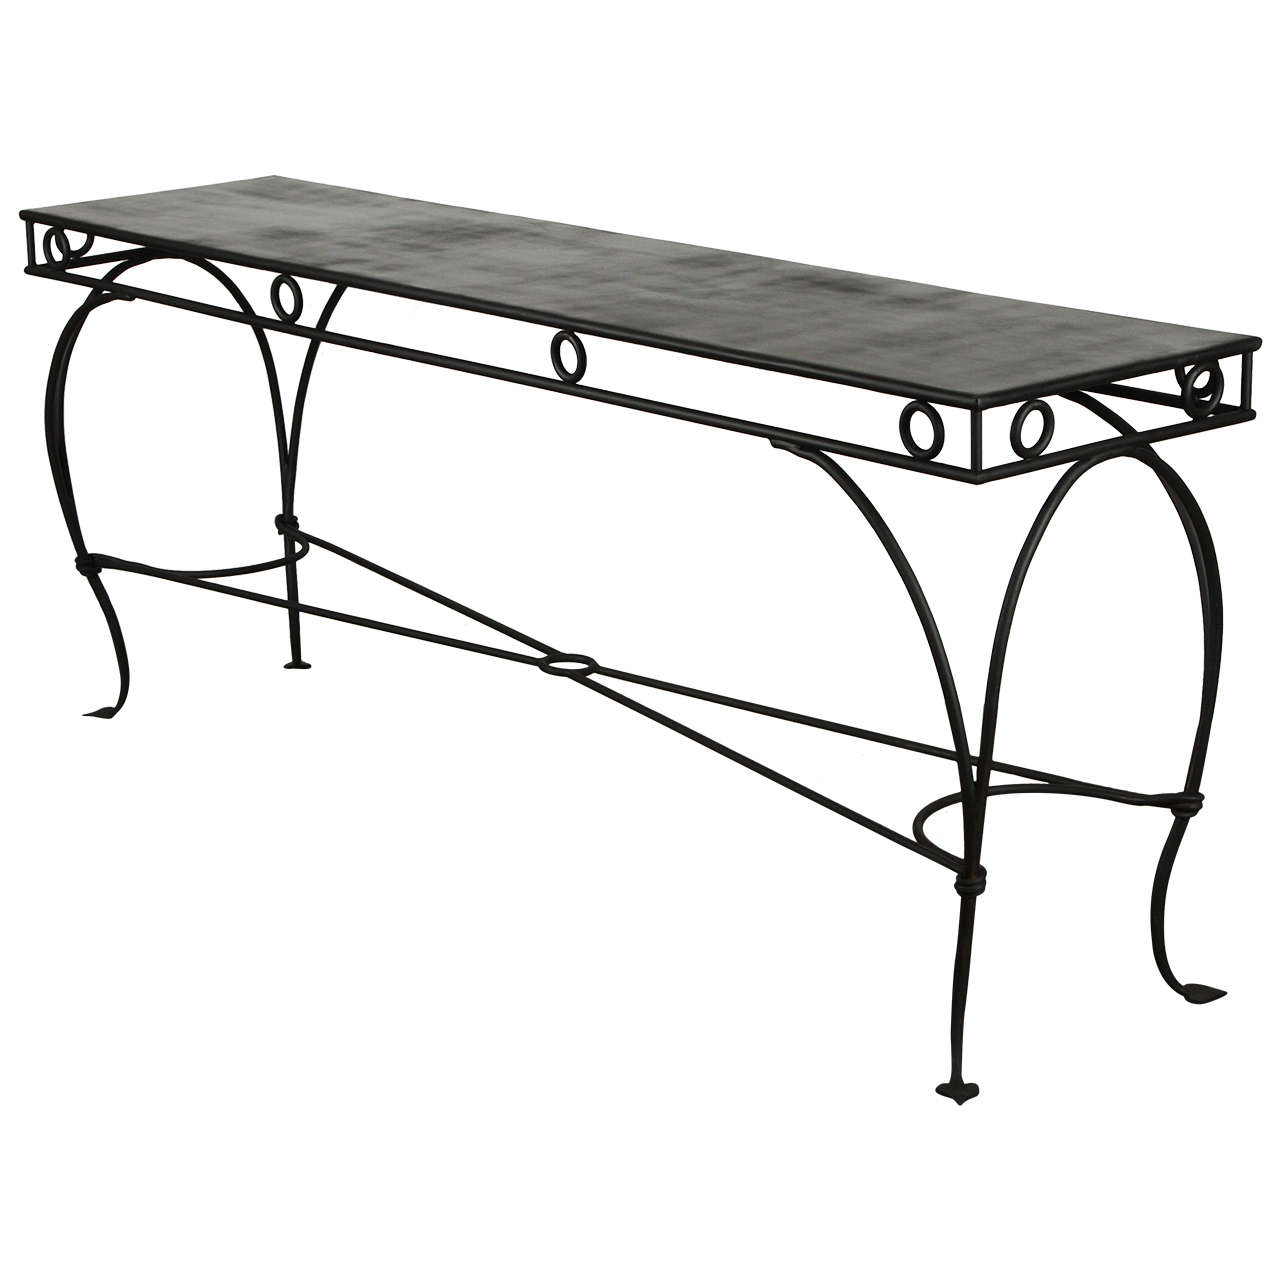 Wrought iron moroccan style console or sofa table at 1stdibs for Wrought iron sofa table base